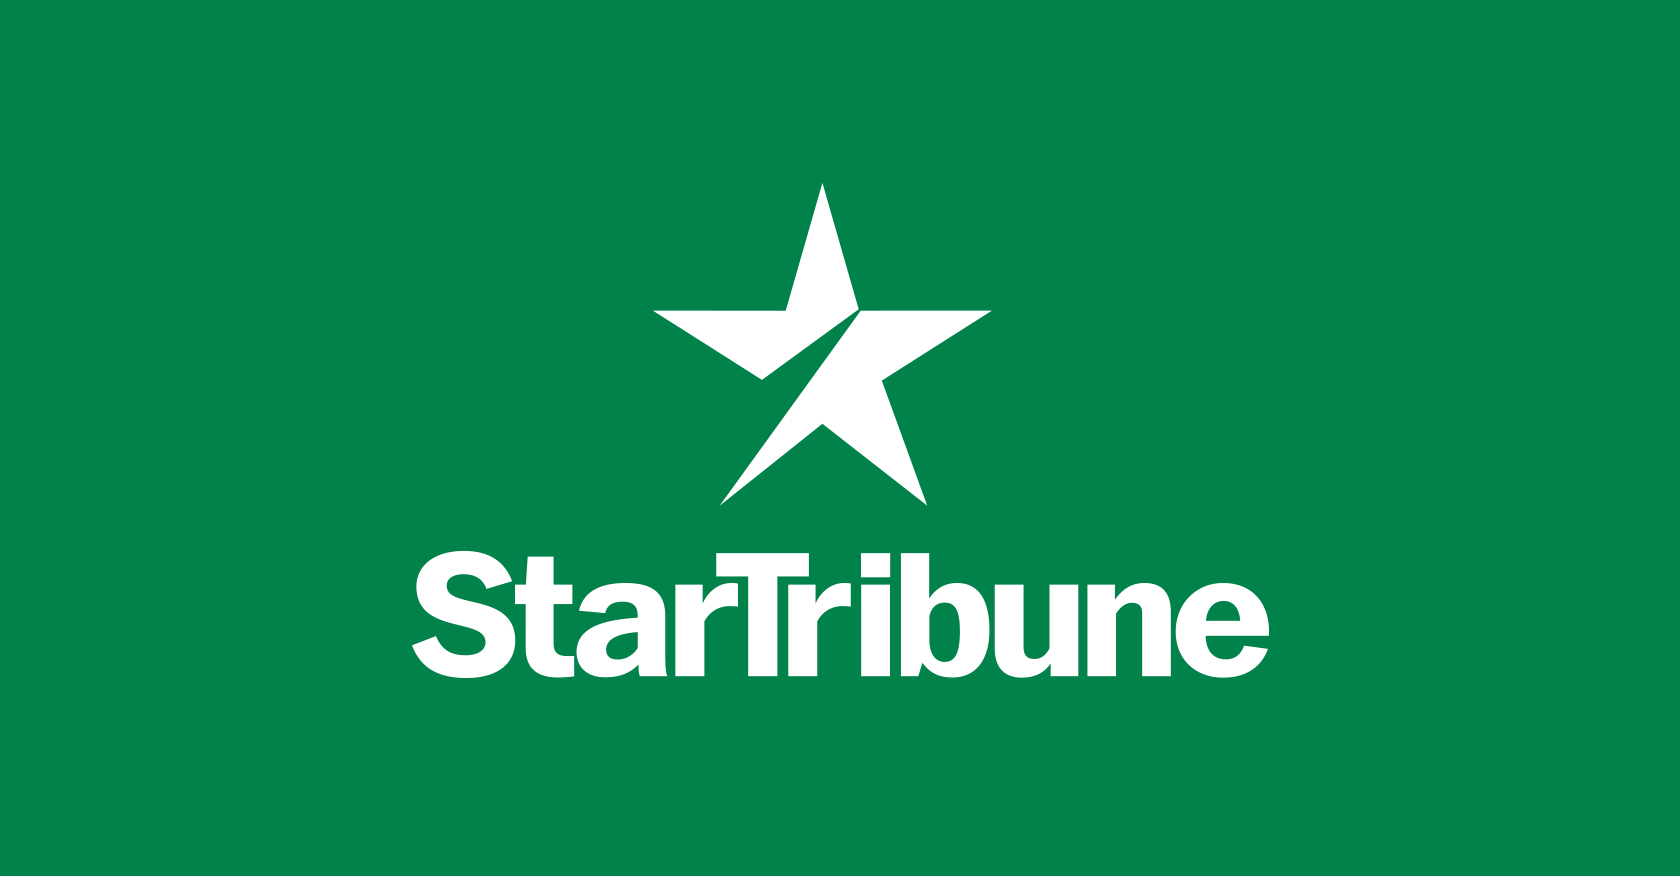 www.startribune.com: Inaugural event to celebrate resiliency of Black Americans